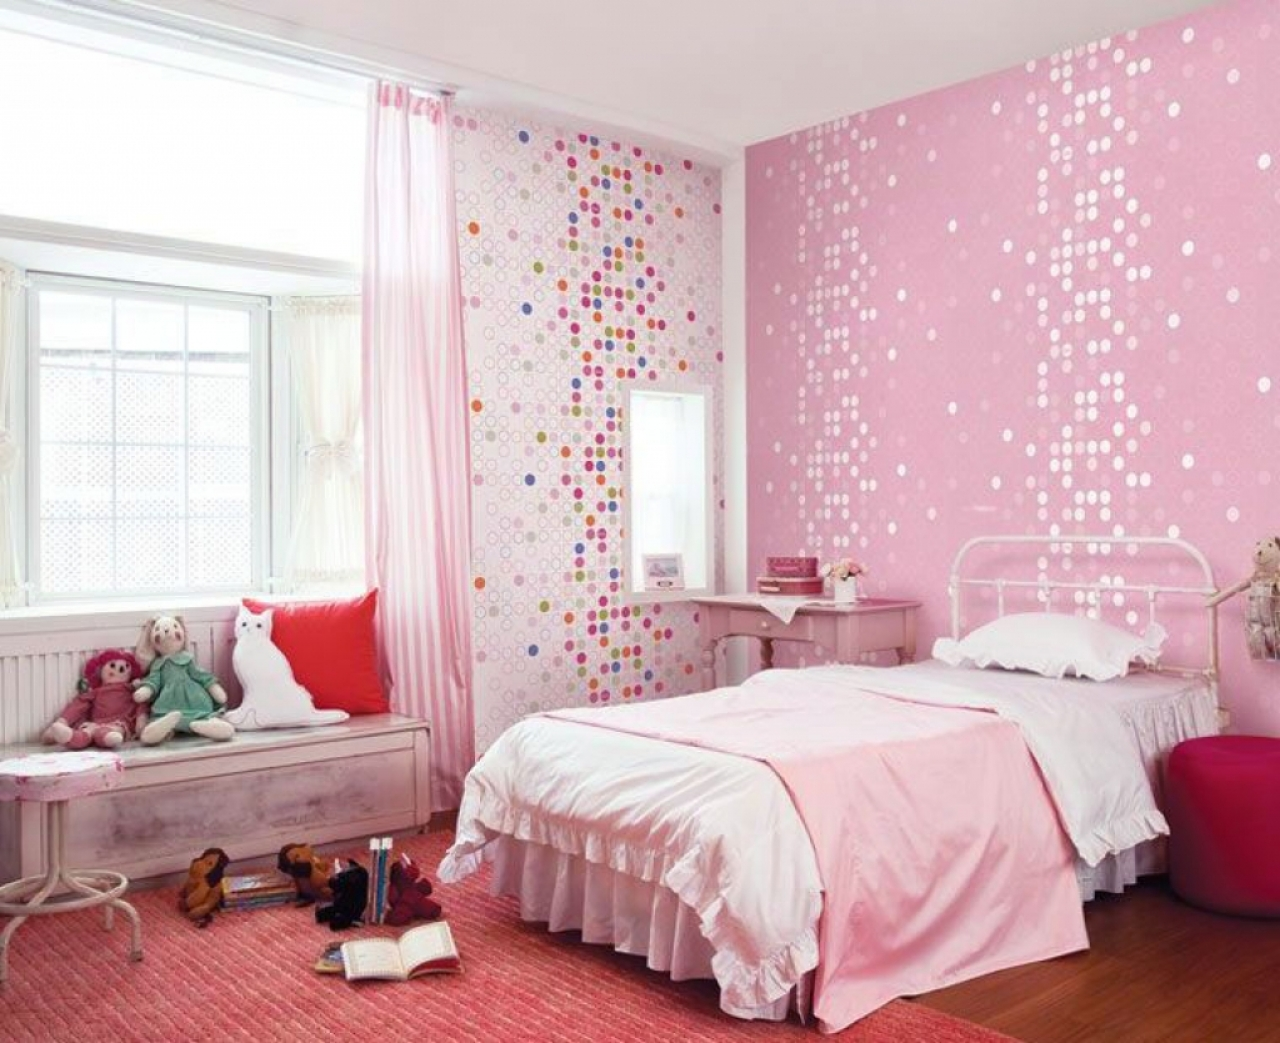 Wallpaper for Girls Bedrooms - WallpaperSafari